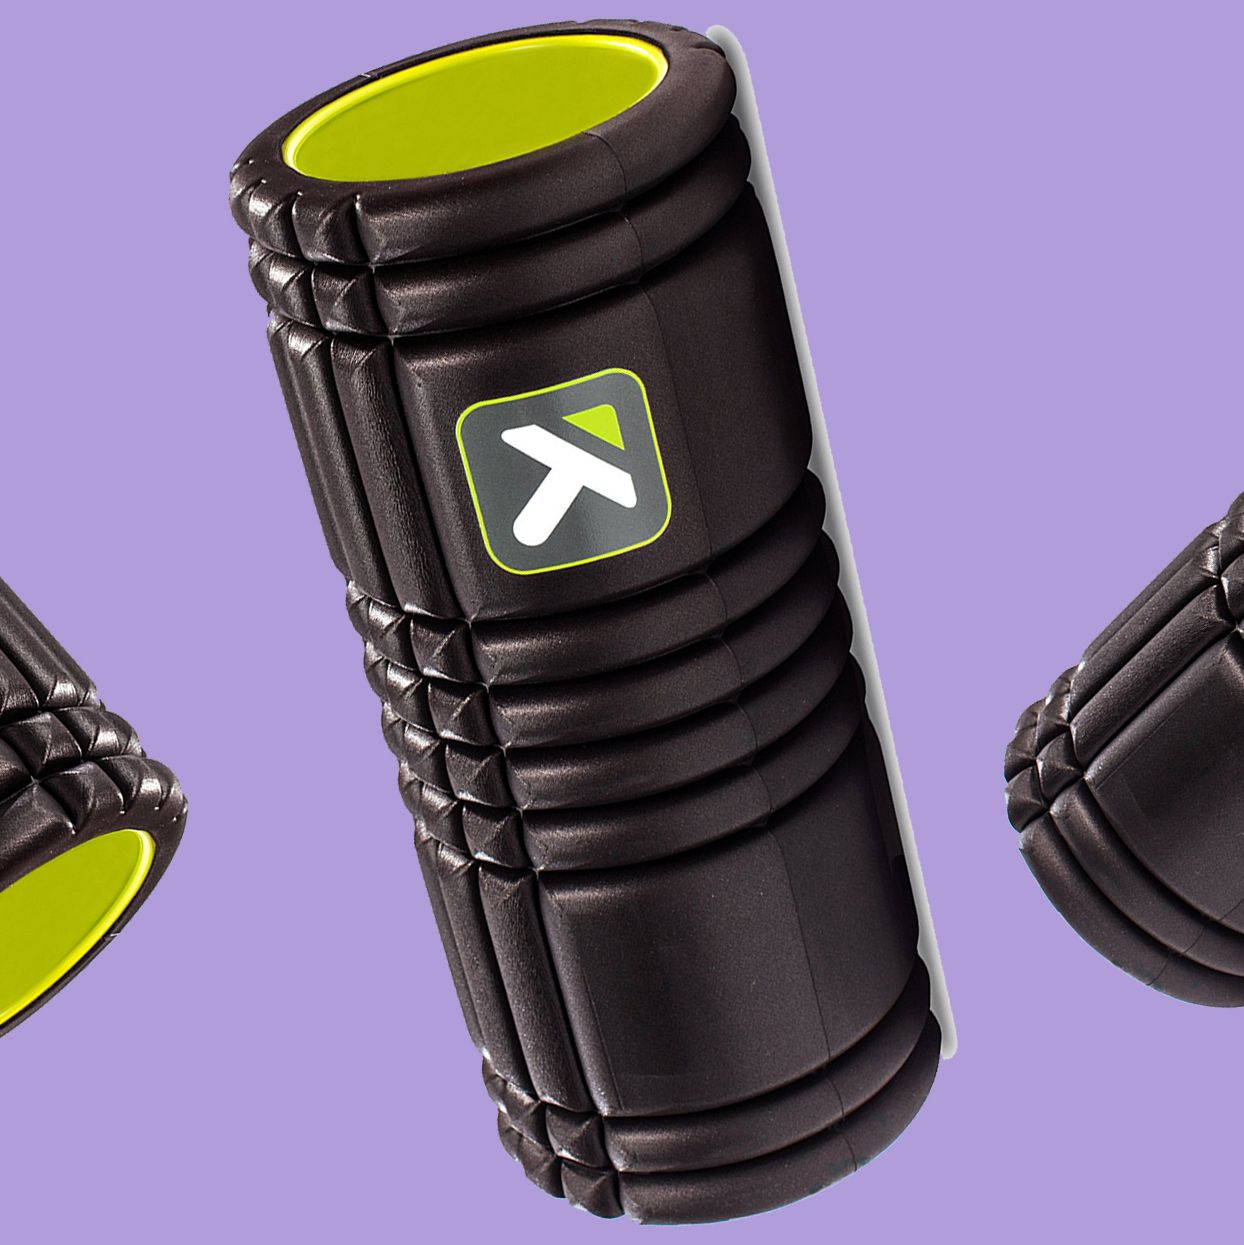 Deal of the Day: This Foam Roller Is the Ultimate Massage Tool for Easing Aches and Pains